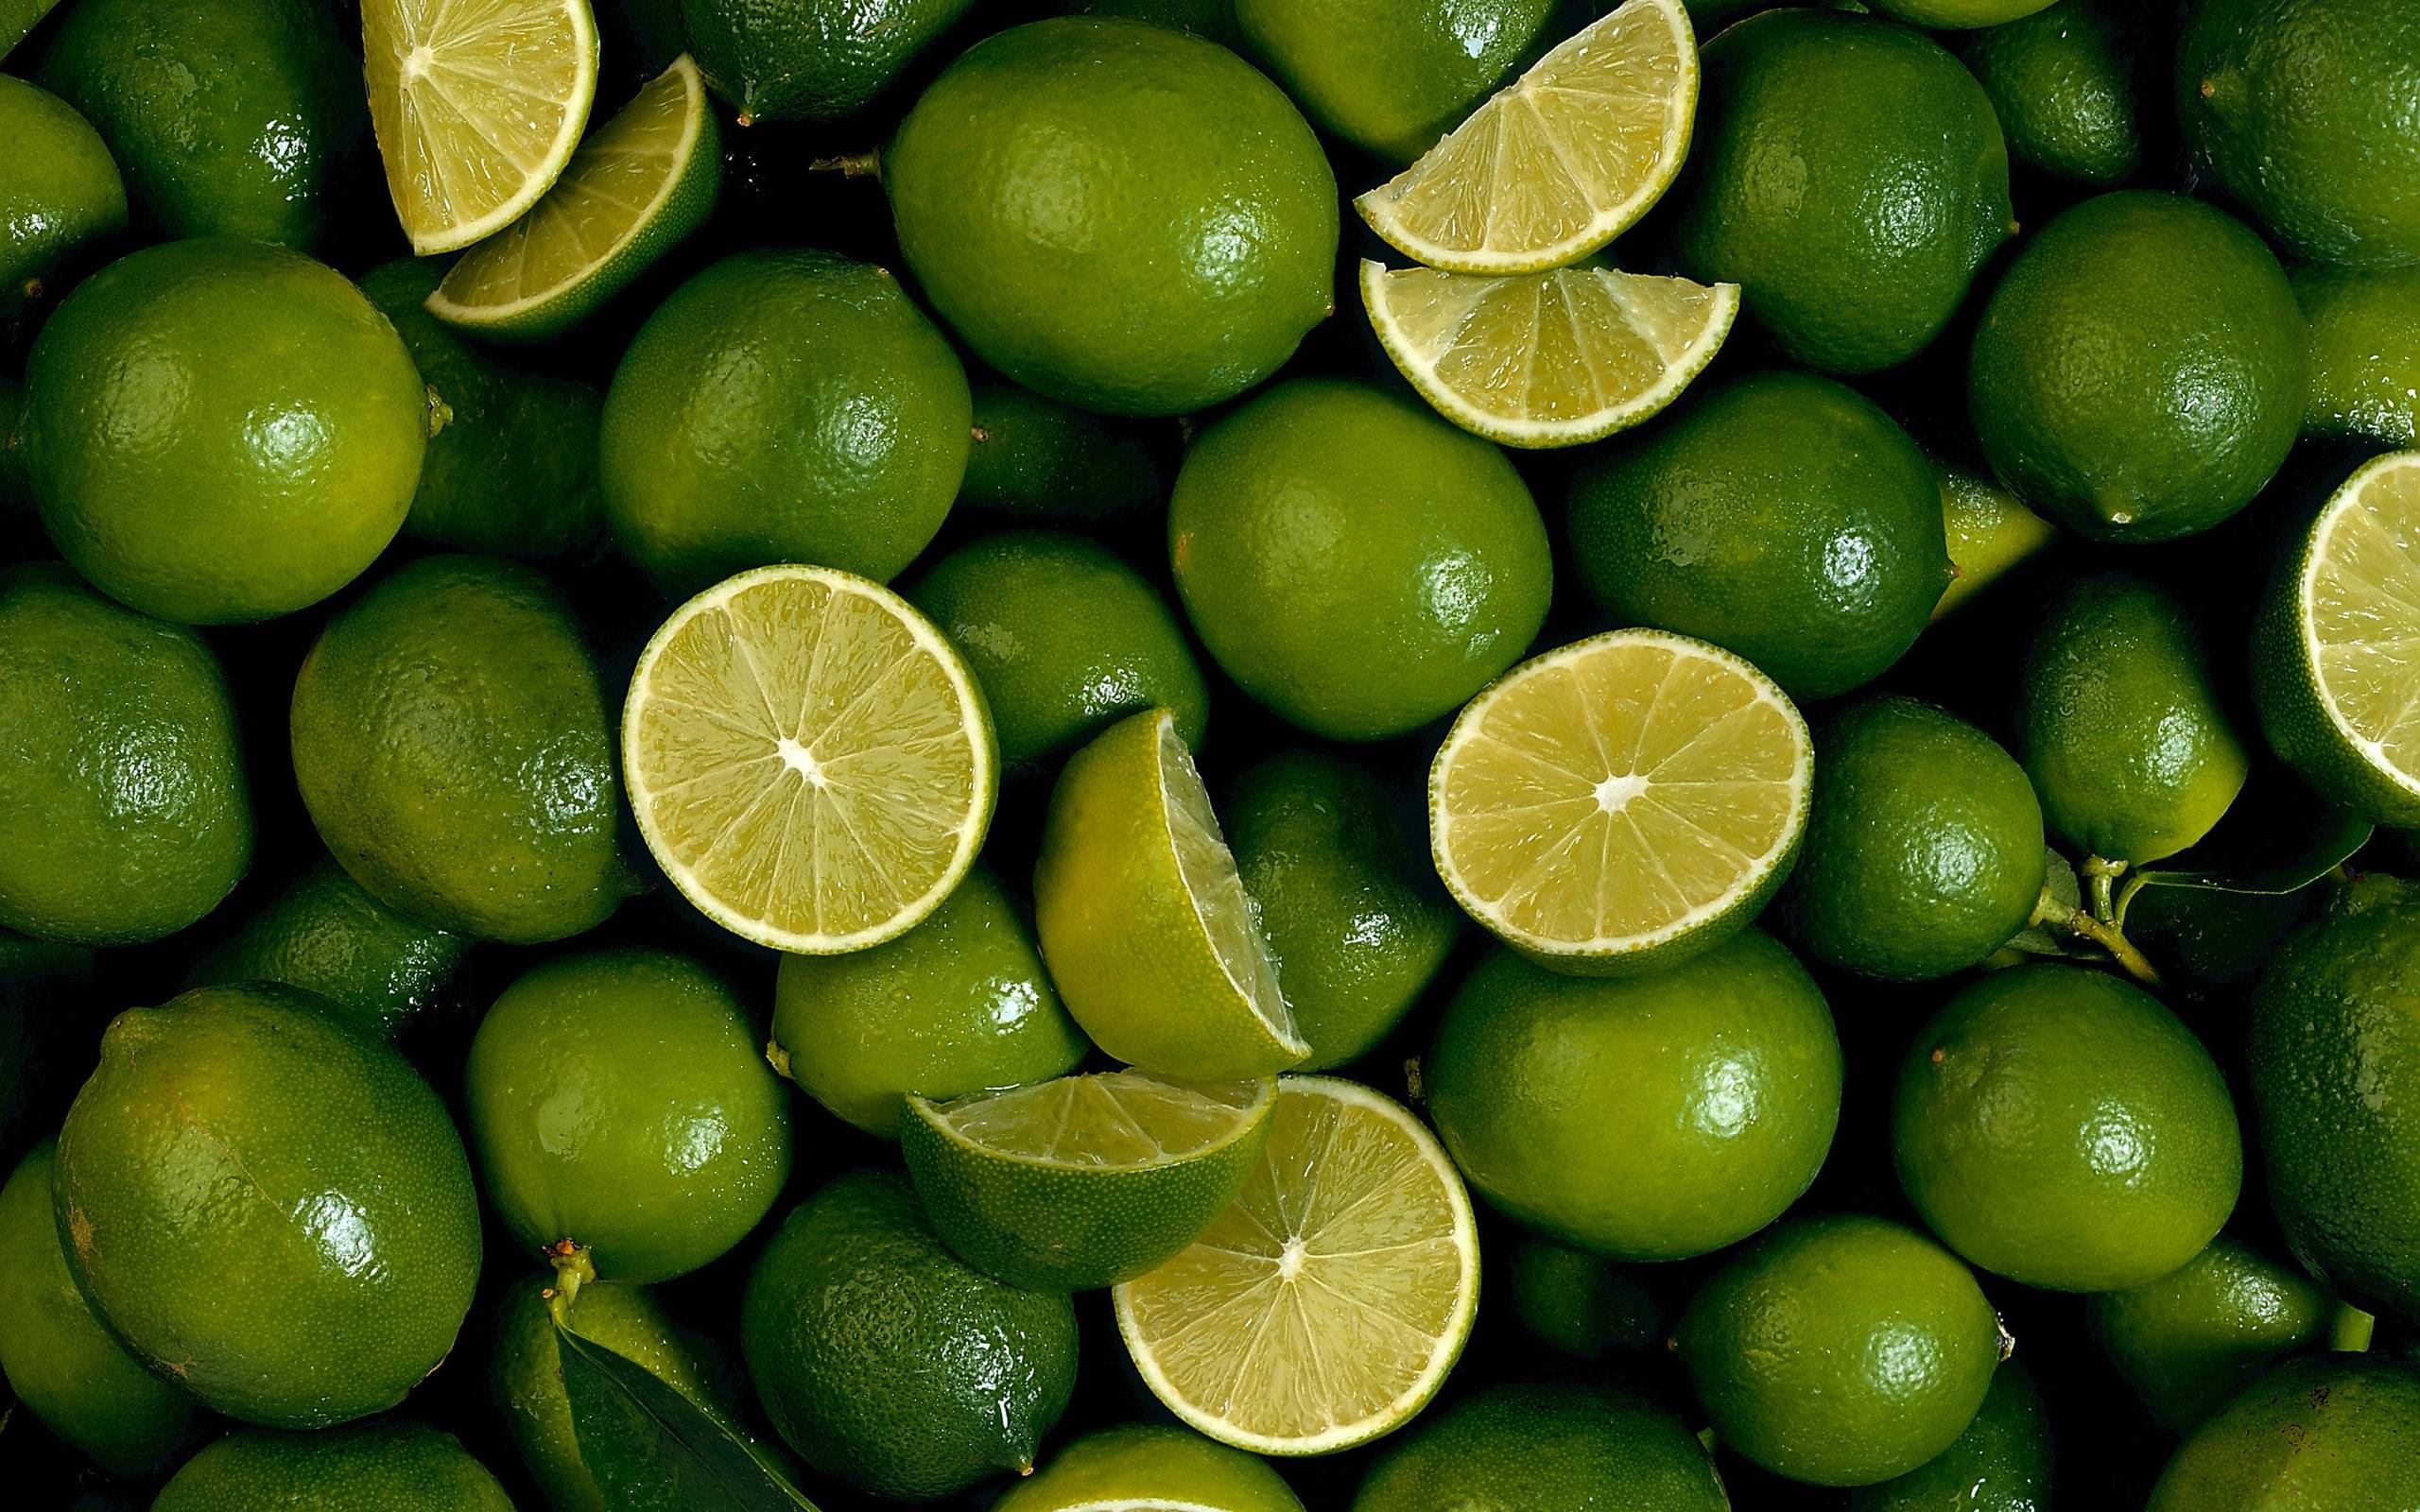 lime wallpapers alphacoders images8 green background hd desktop food fruits citrus seeds backgrounds wall reddit walls px wallpapercave abyss